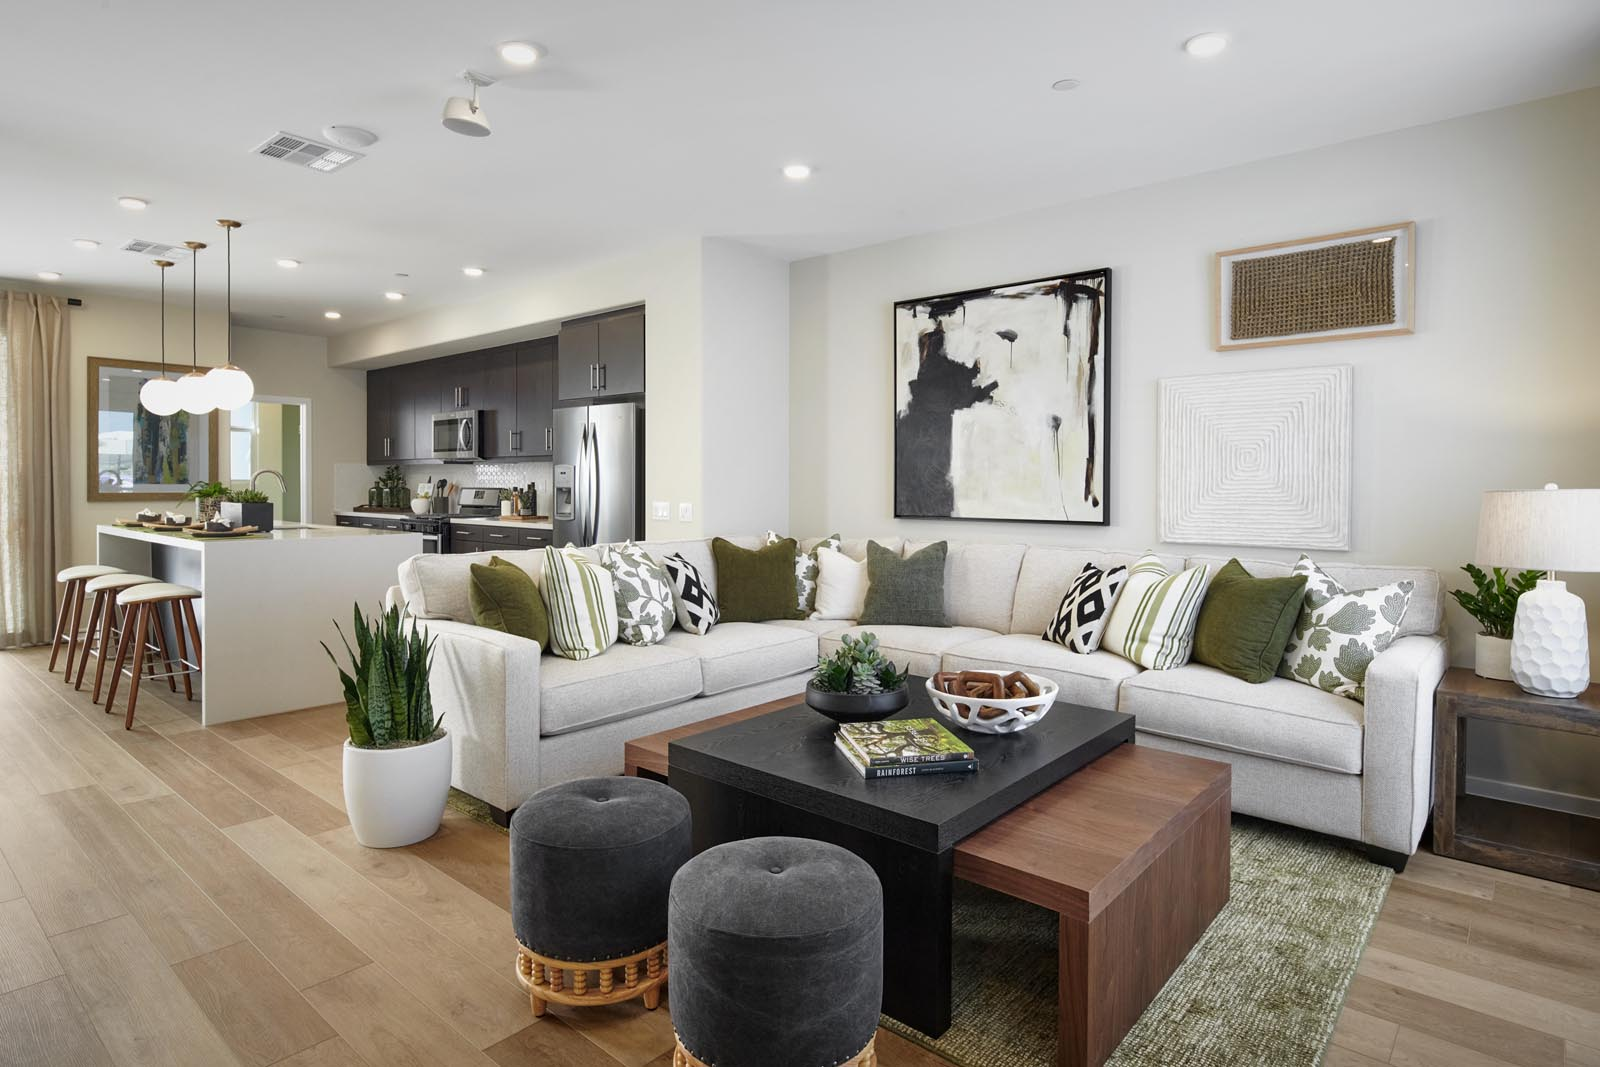 Great Room   Residence 3   Enliven   New Homes in Rancho Cucamonga, CA   Van Daele Homes